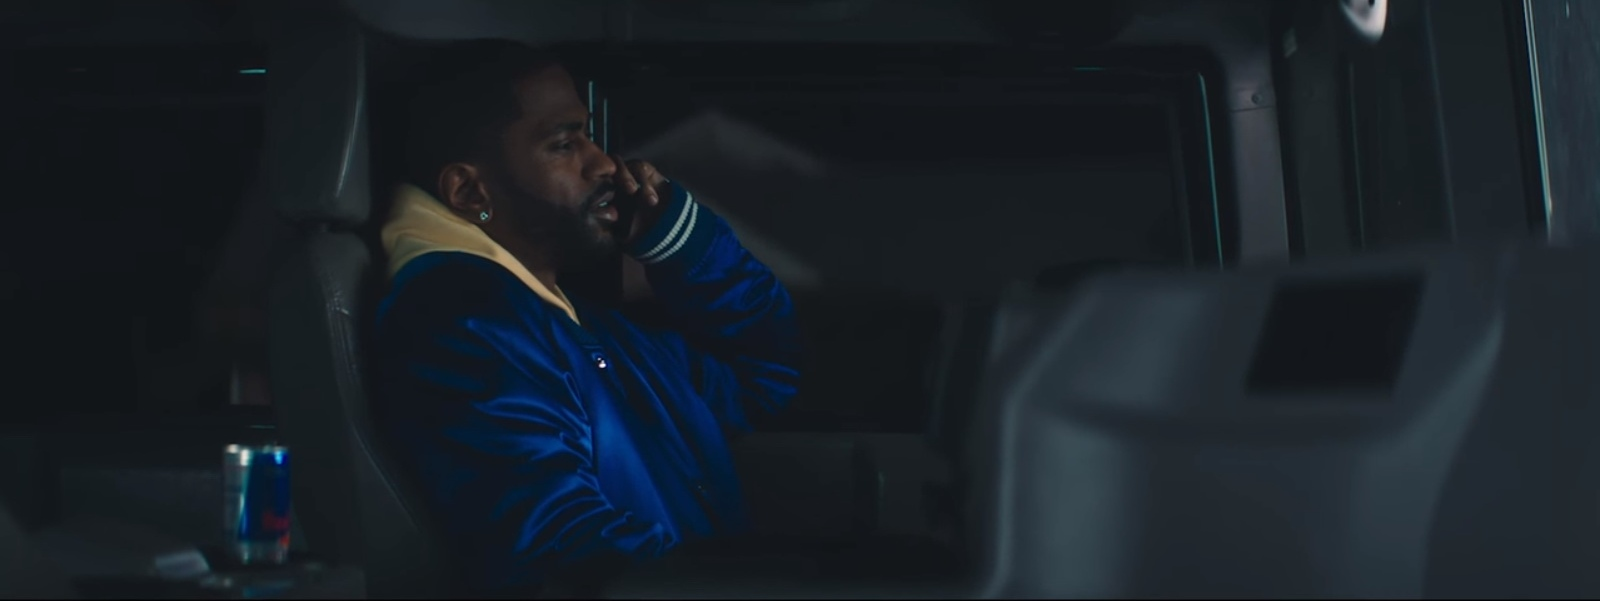 Red Bull - Big Sean - Jump Out The Window Music Video  Product Placement Review